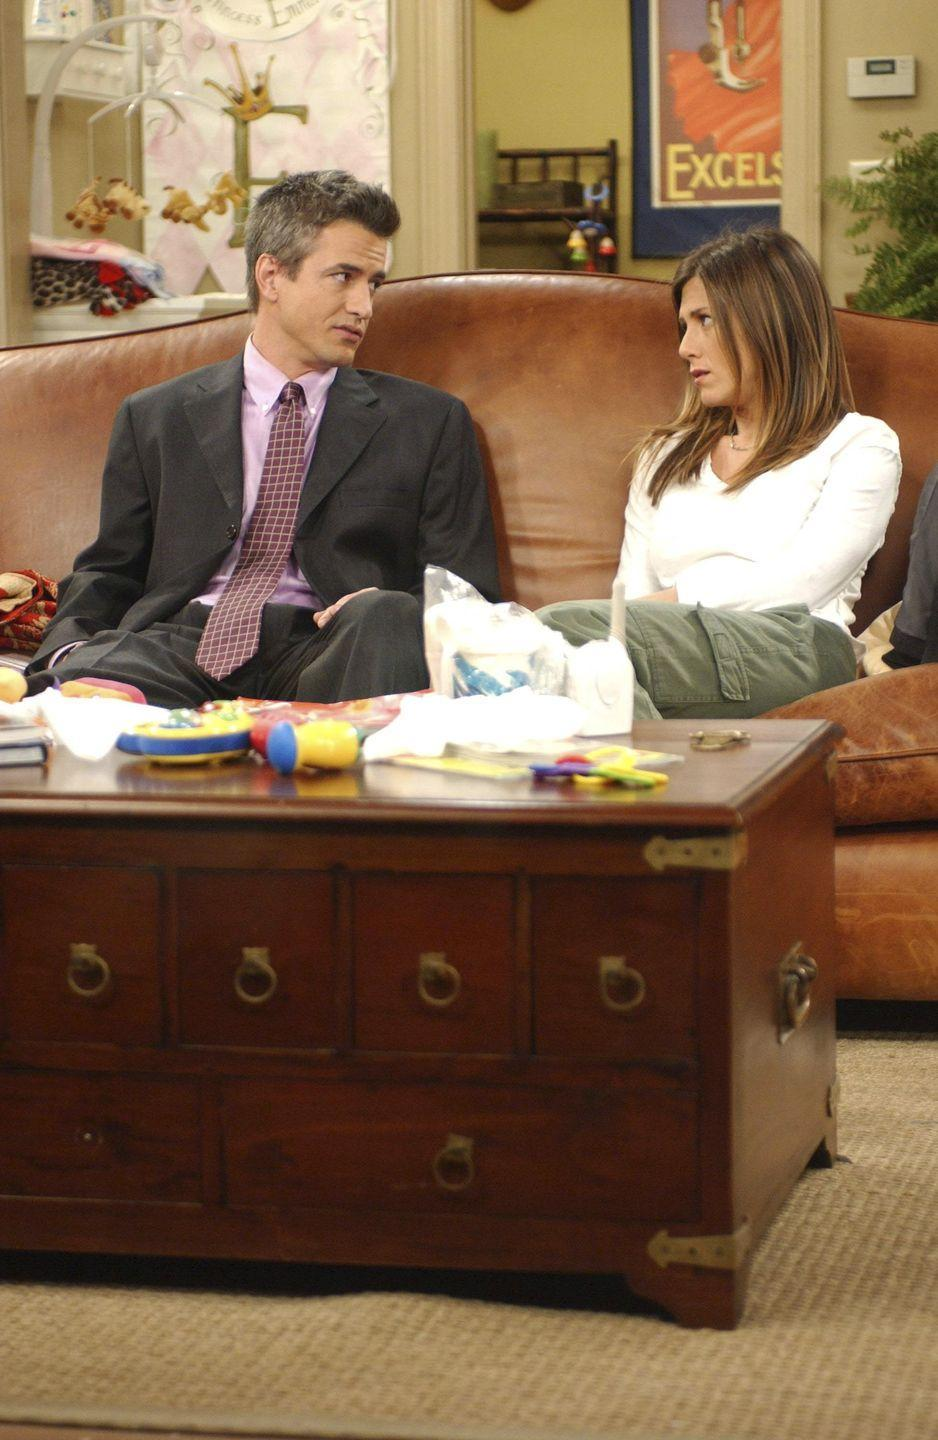 "<p>Best known for his role in <em>My Best Friend's Wedding</em>, Dermot Mulroney played Rachel's coworker-turned-love-interest for three episodes in season 9. The star recently shared how he started getting recognized by younger fans after Netflix started streaming the show: ""I was suddenly being shouted at on the street, 'Hey Gavin!' and I'm like, 'Who the f*** is Gavin?'"" he told <em><a href=""https://www.youtube.com/watch?v=XGN7vJ6rZ_w"" rel=""nofollow noopener"" target=""_blank"" data-ylk=""slk:Wired"" class=""link rapid-noclick-resp"">Wired</a>.</em></p>"